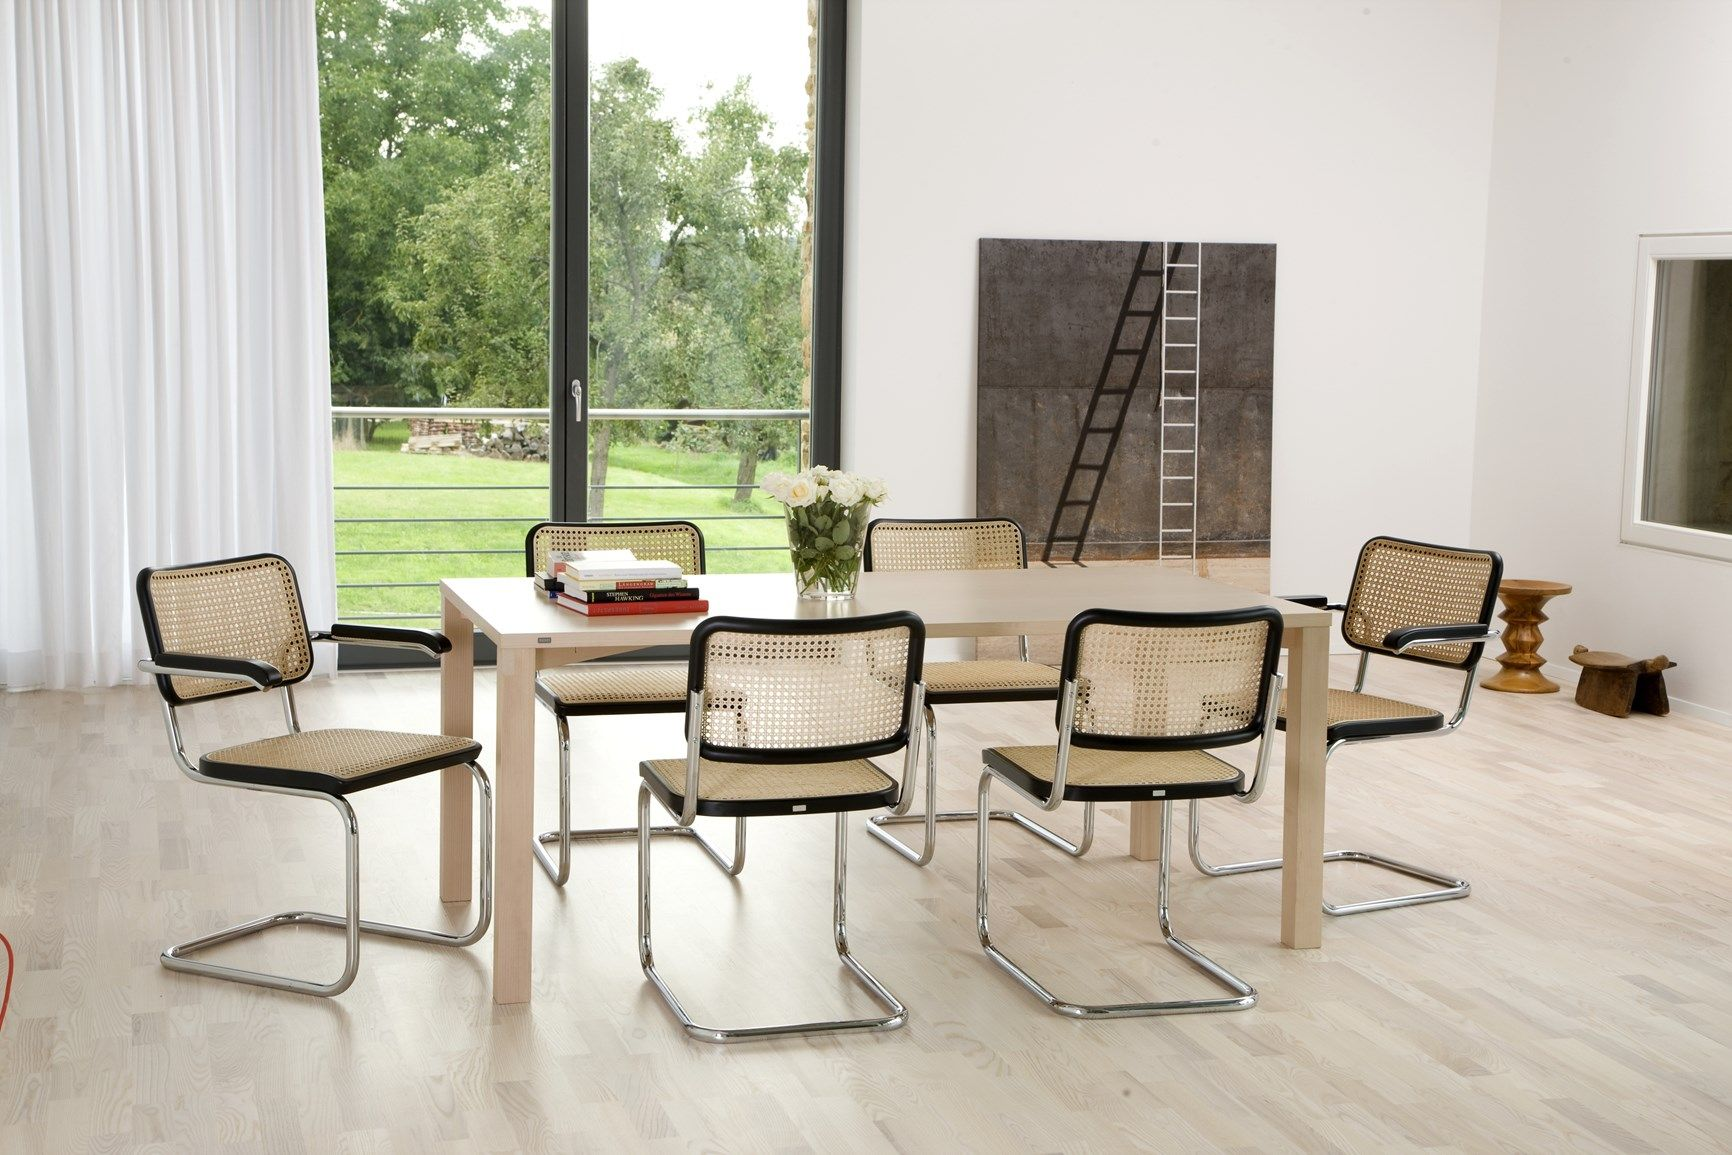 Thonet ad archiproducts milano for Mornata milano